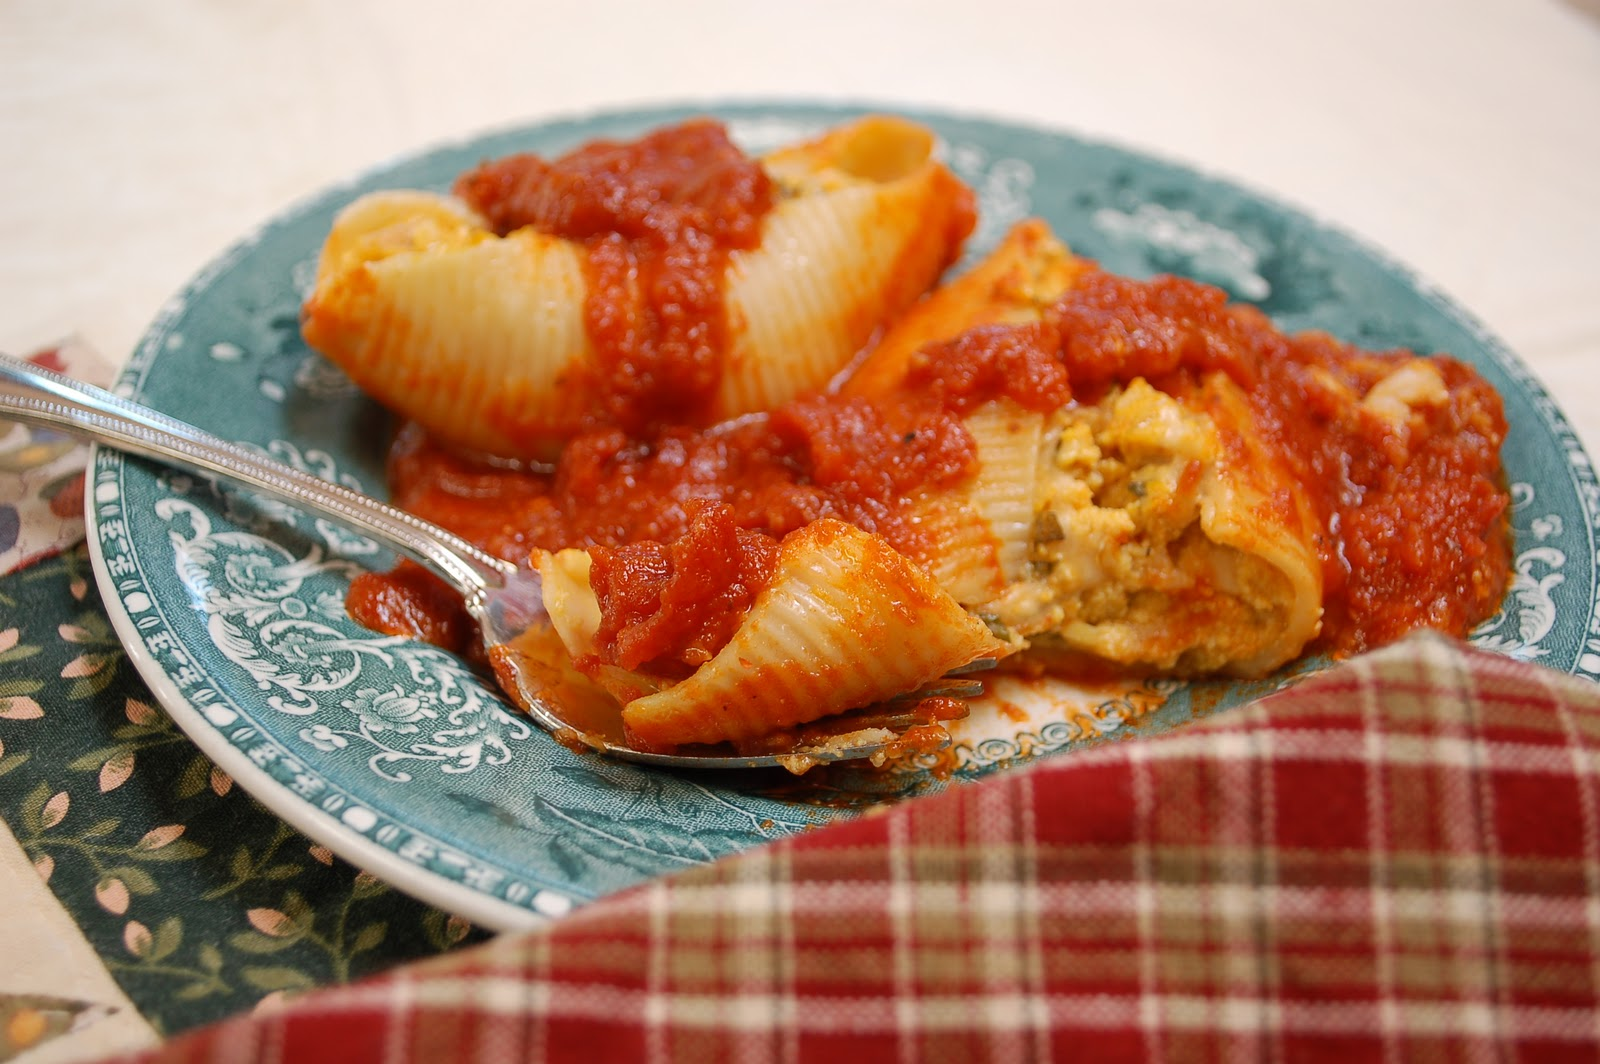 The Spice Garden: Pumpkin and Herbed Ricotta Stuffed Shells